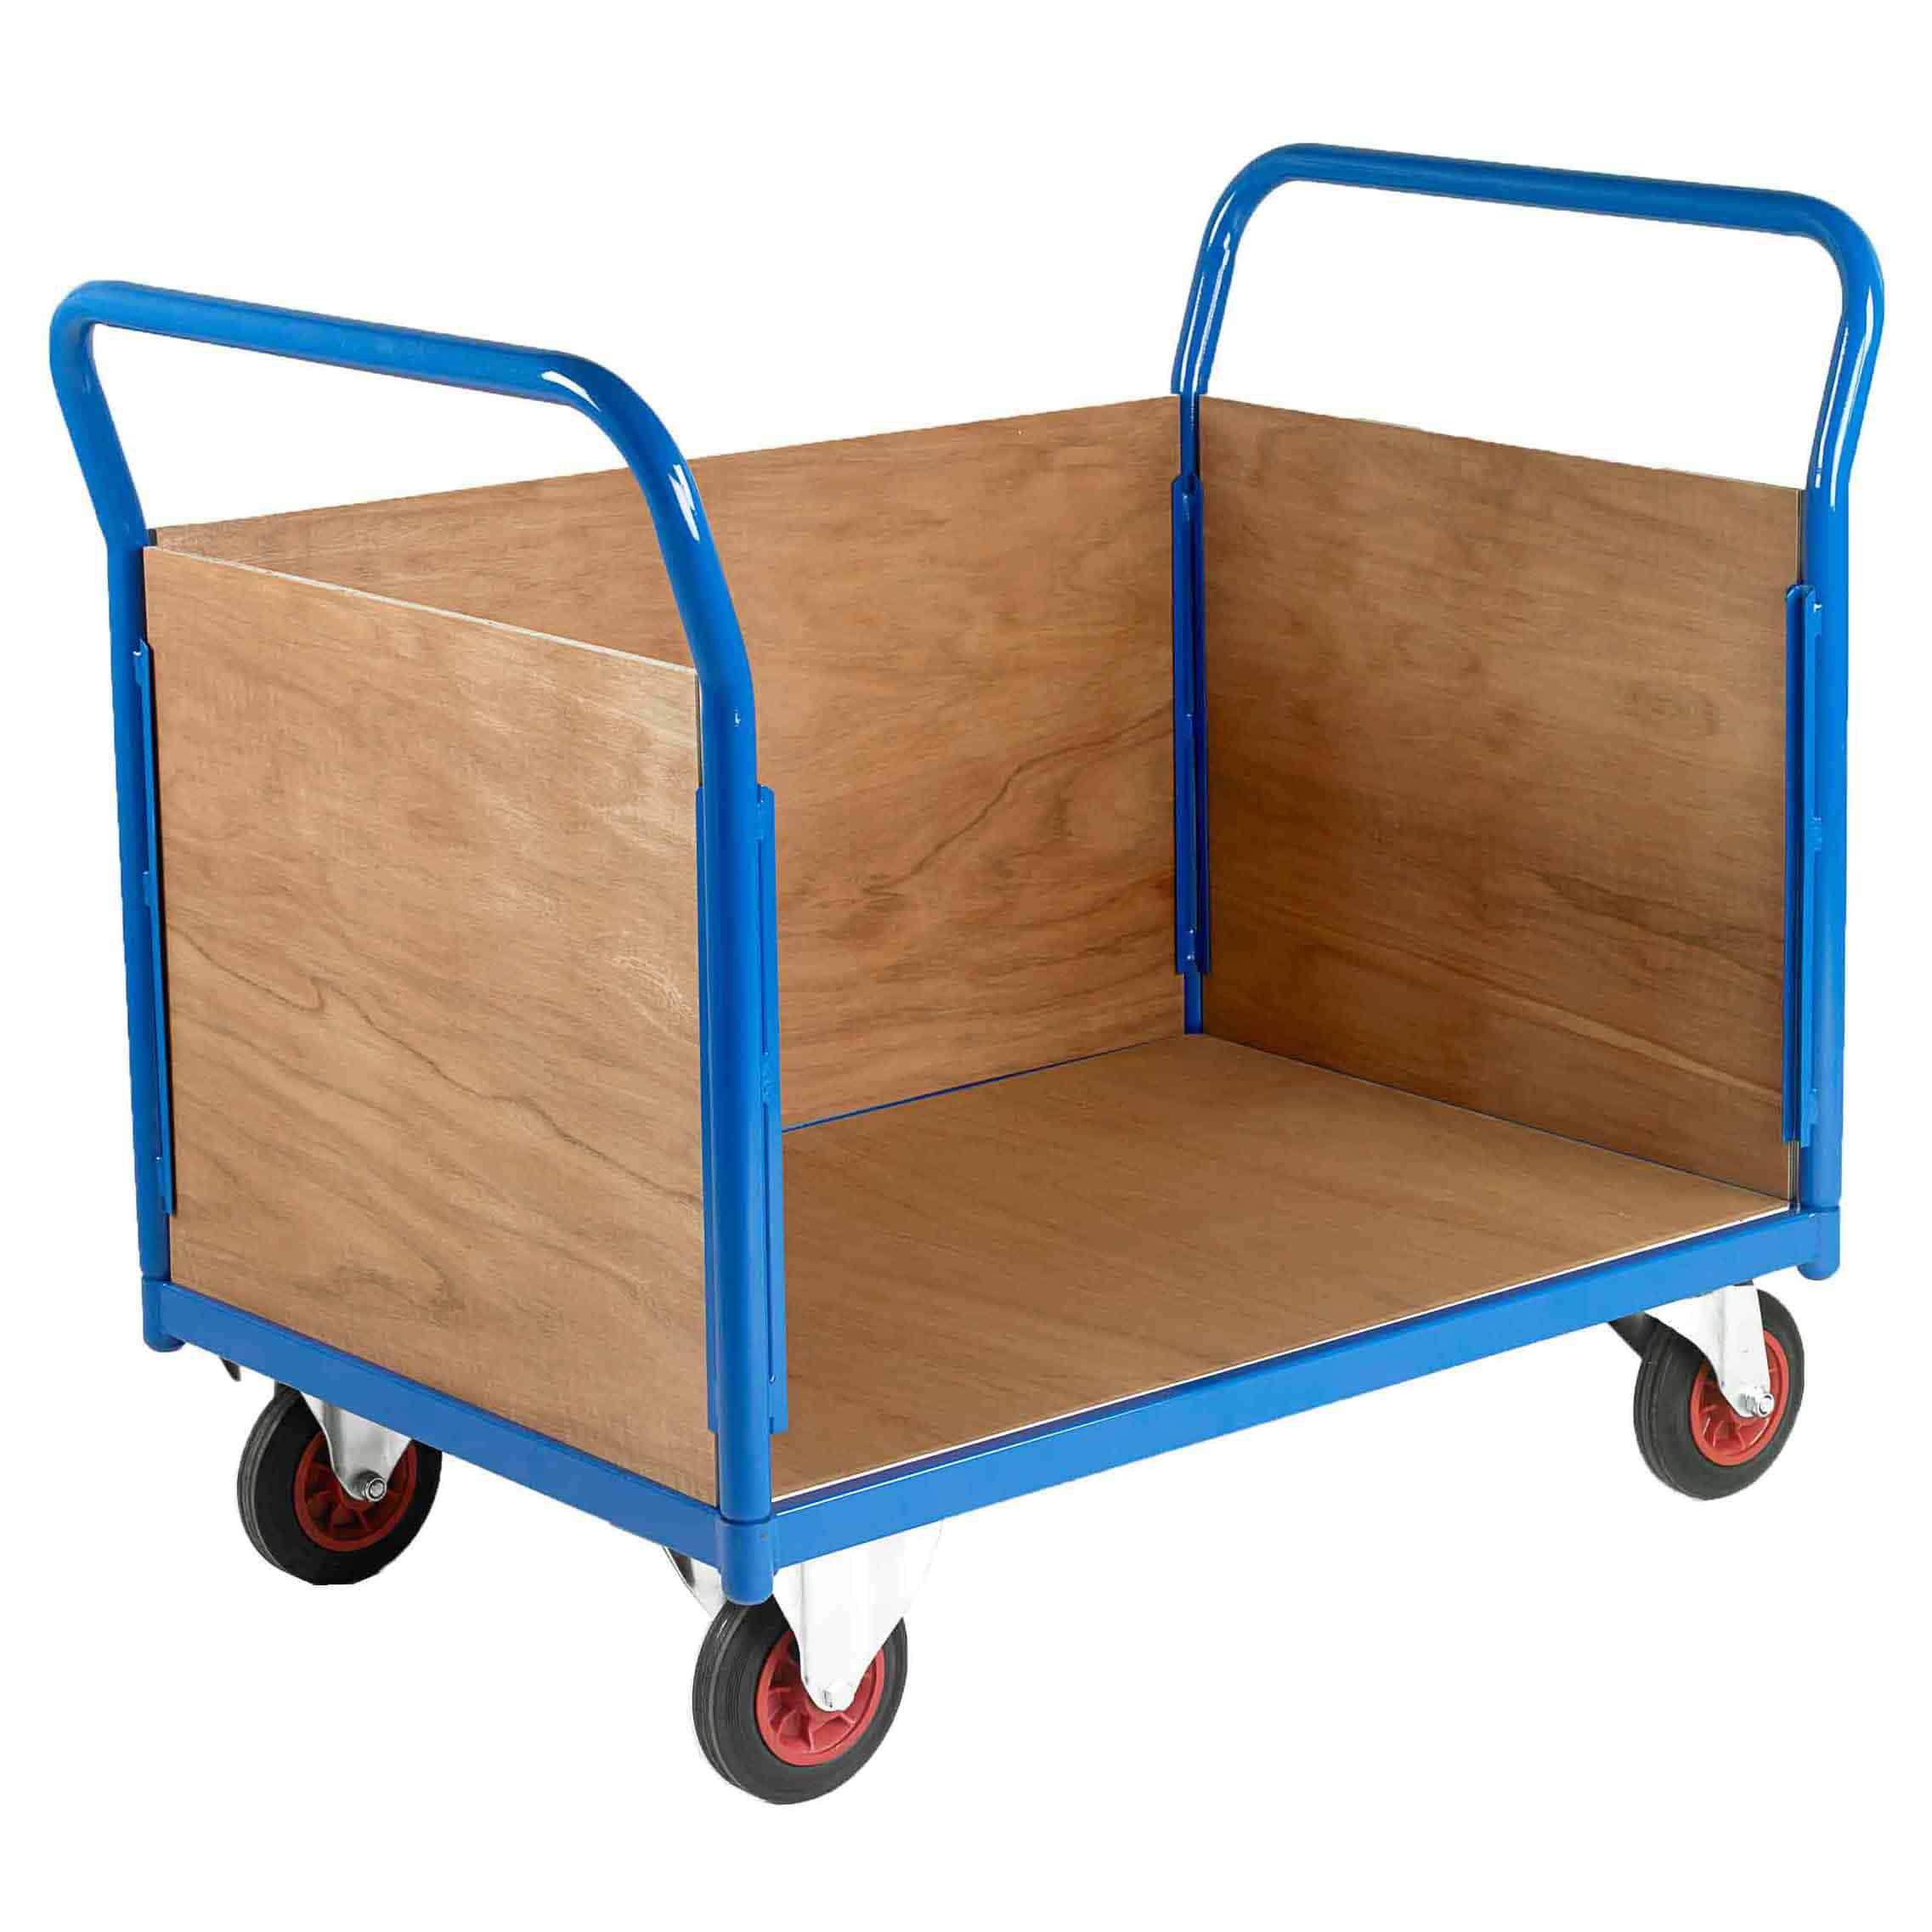 500 3 Sided Timber Platform Trolleys